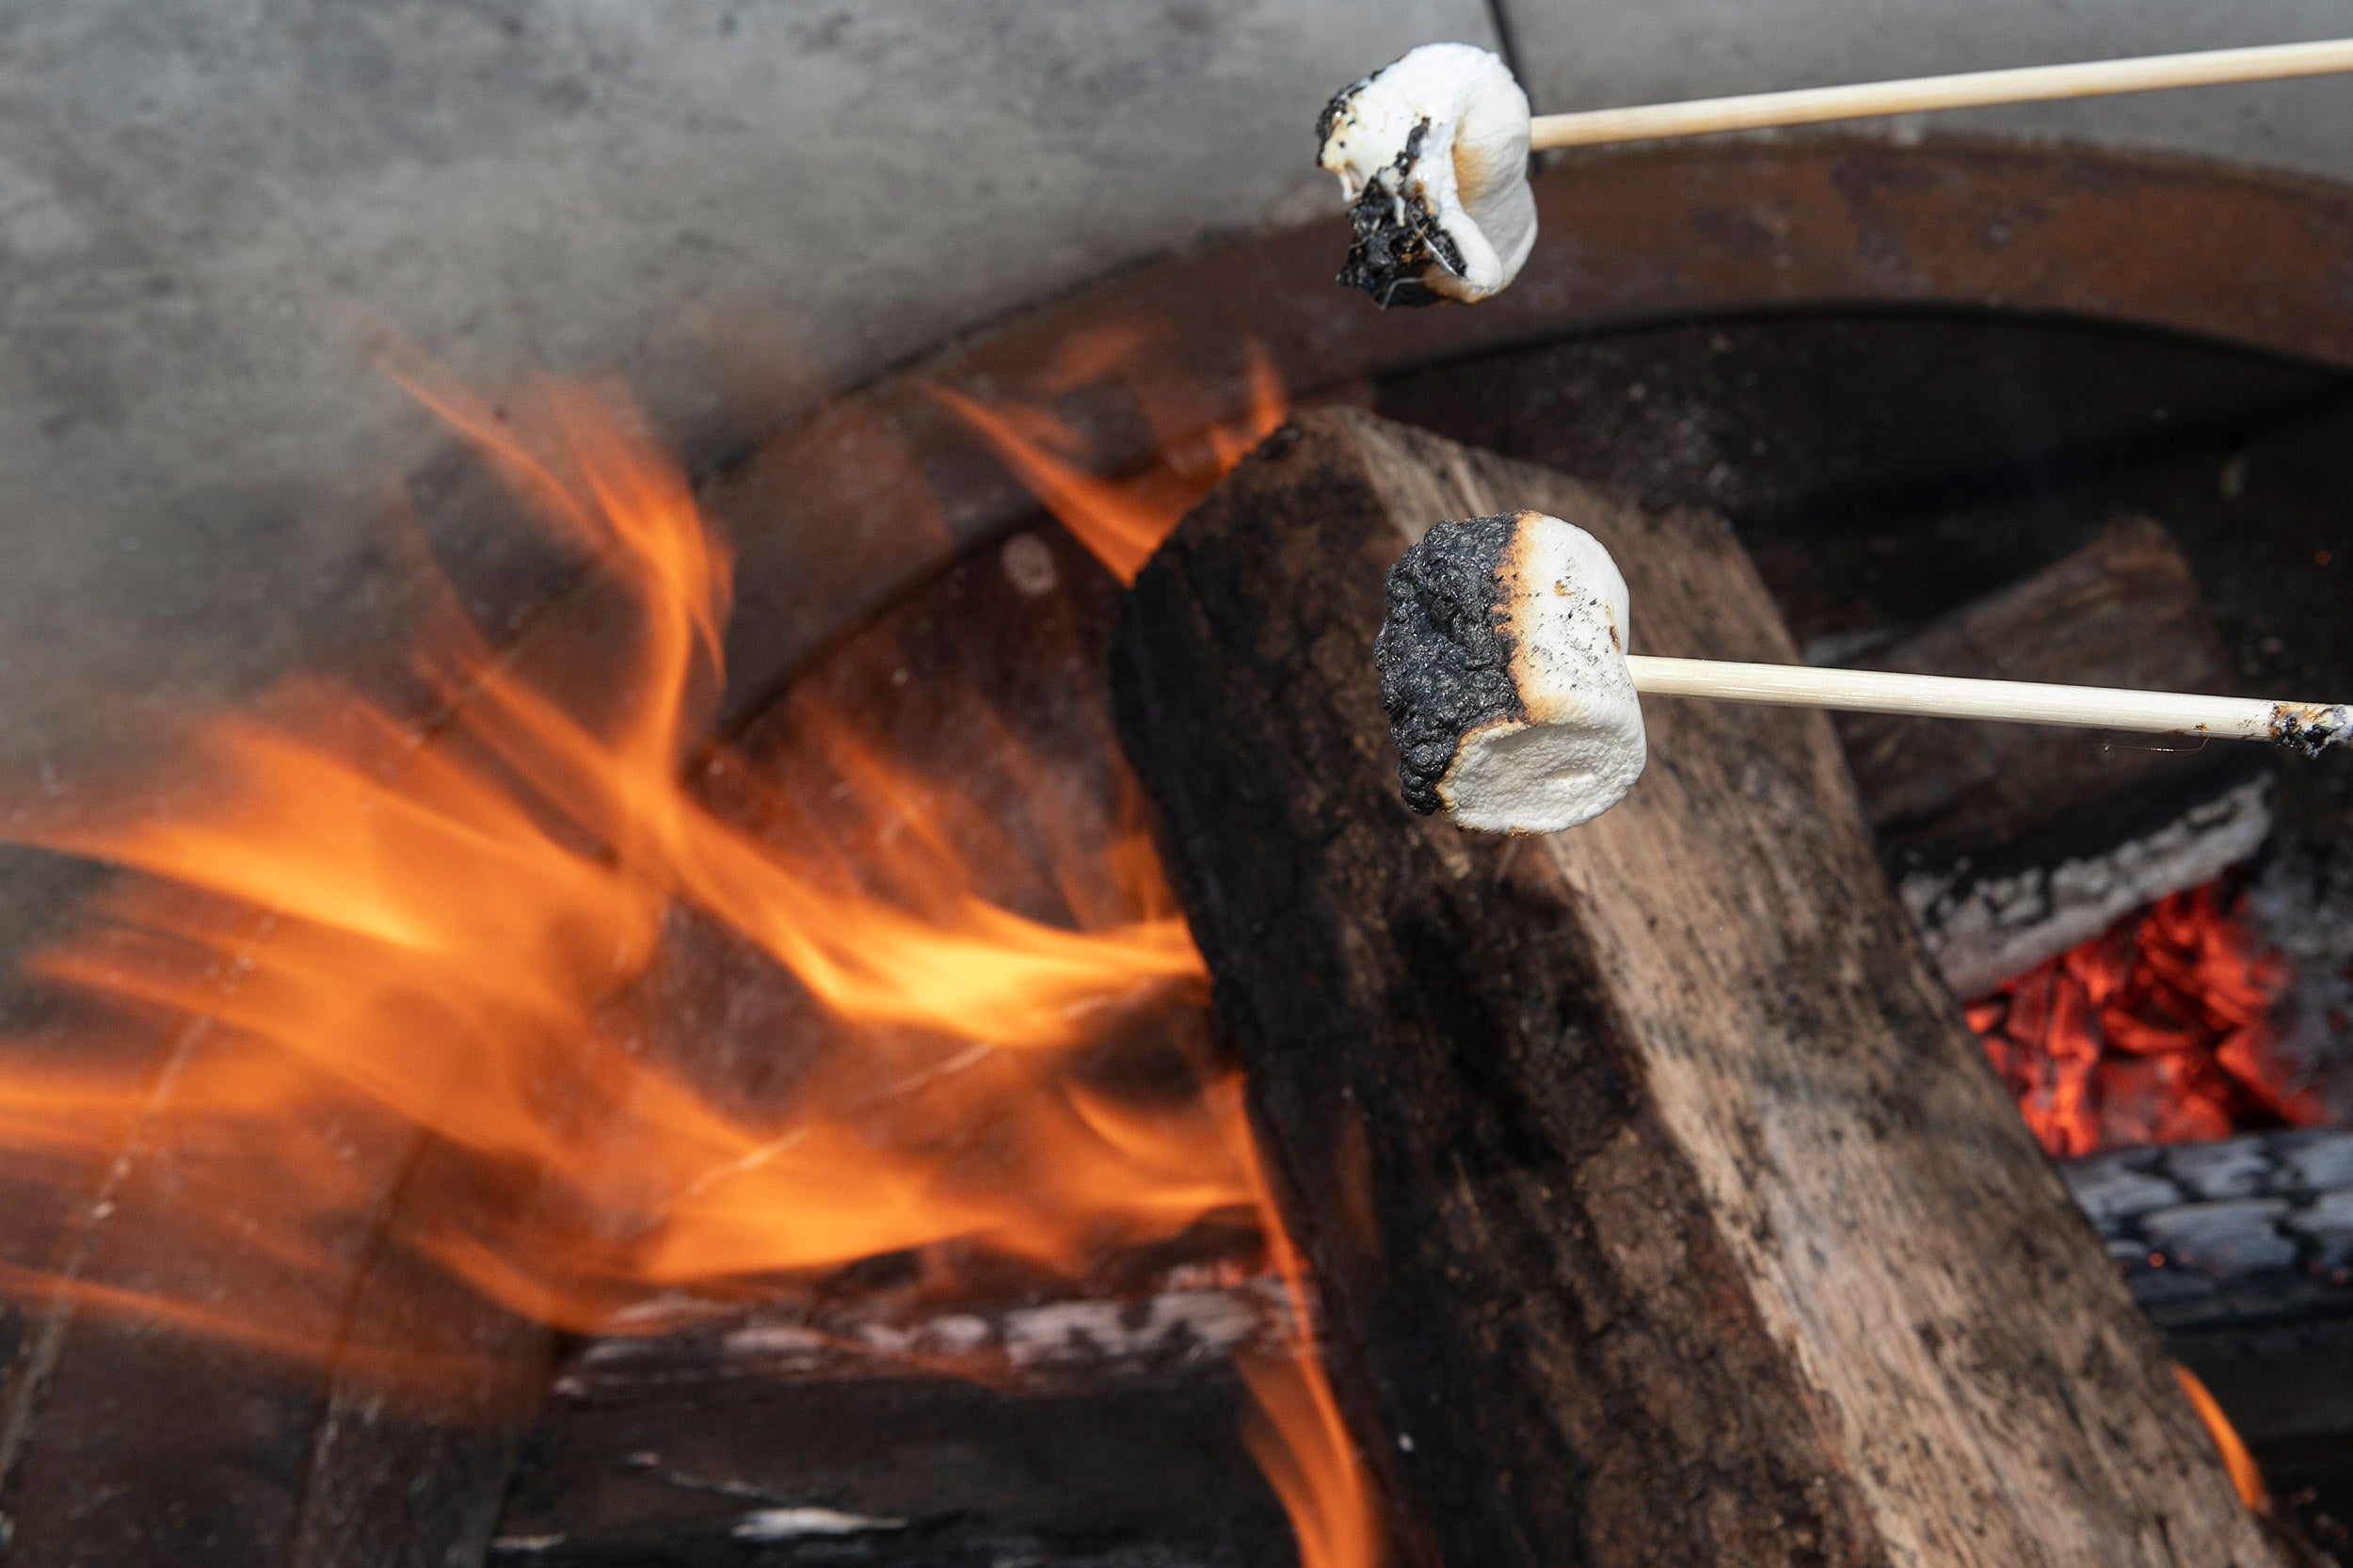 Marshmallows toasting over fire pit at the Science Center Plaza.